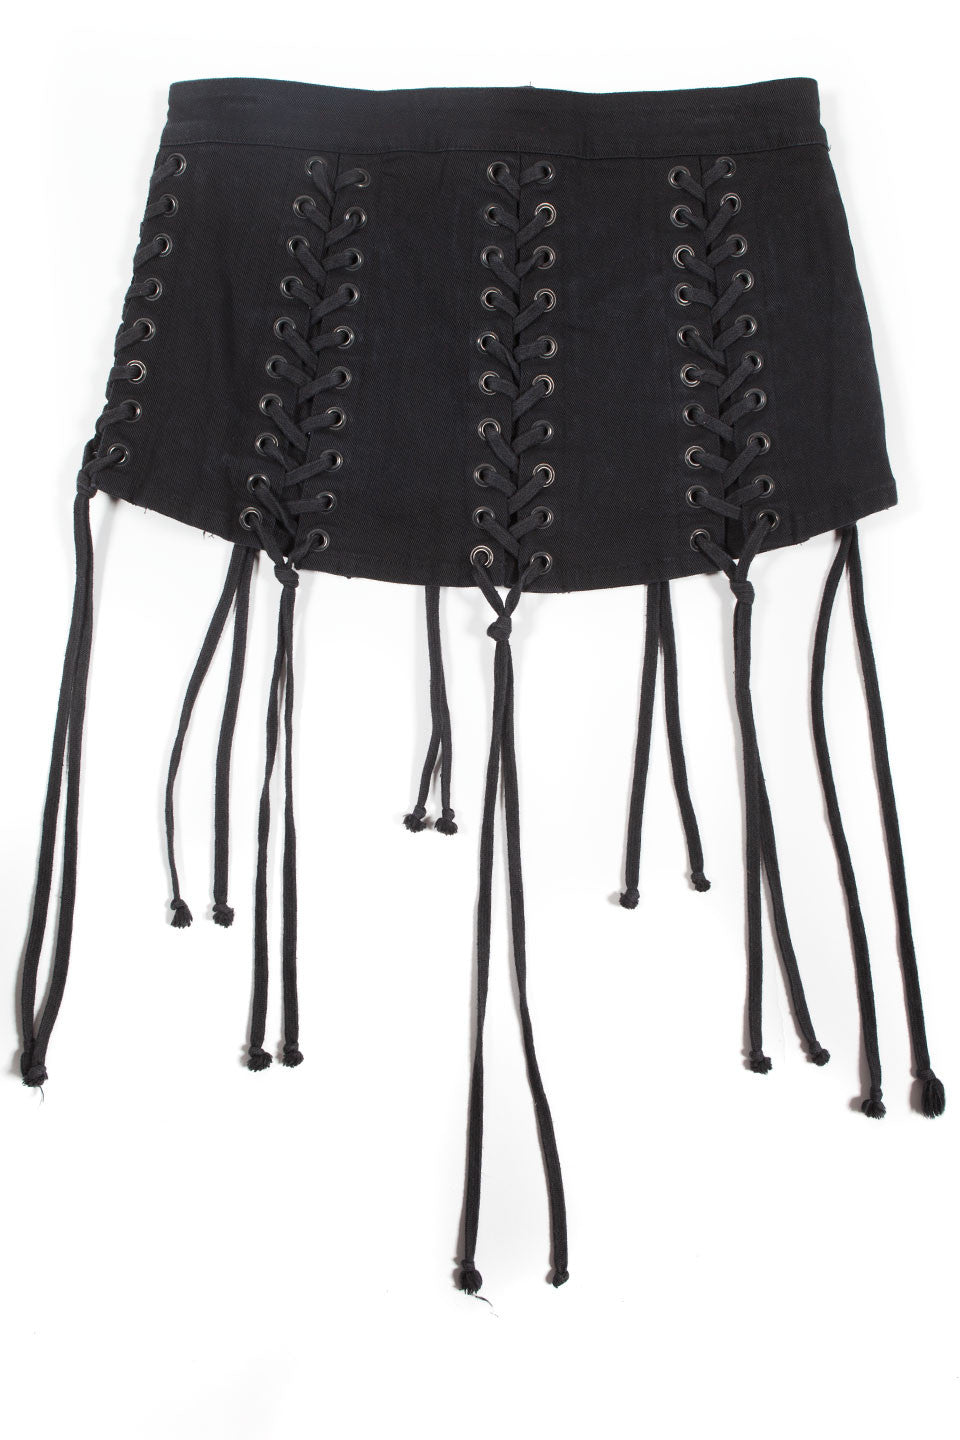 Lace Up Micro Mini Skirt-Dresses-Lip Service